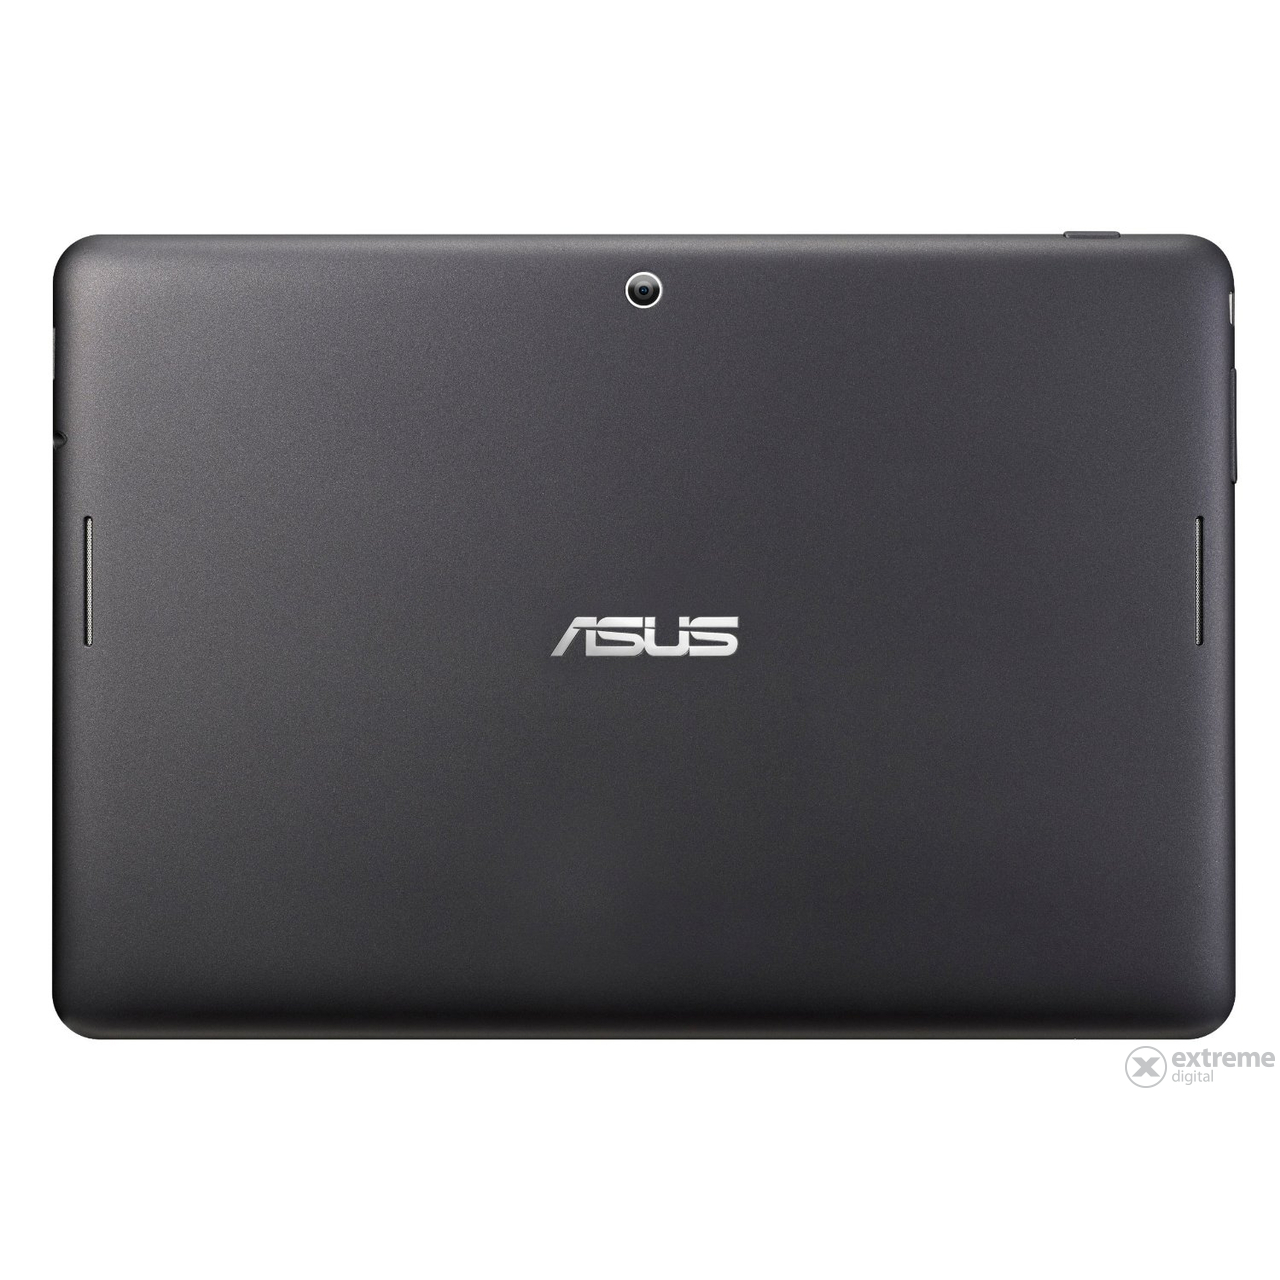 asus-memo-pad-10-me102a-16gb-refurbished-tablet-szurke-android_7358429a.jpg